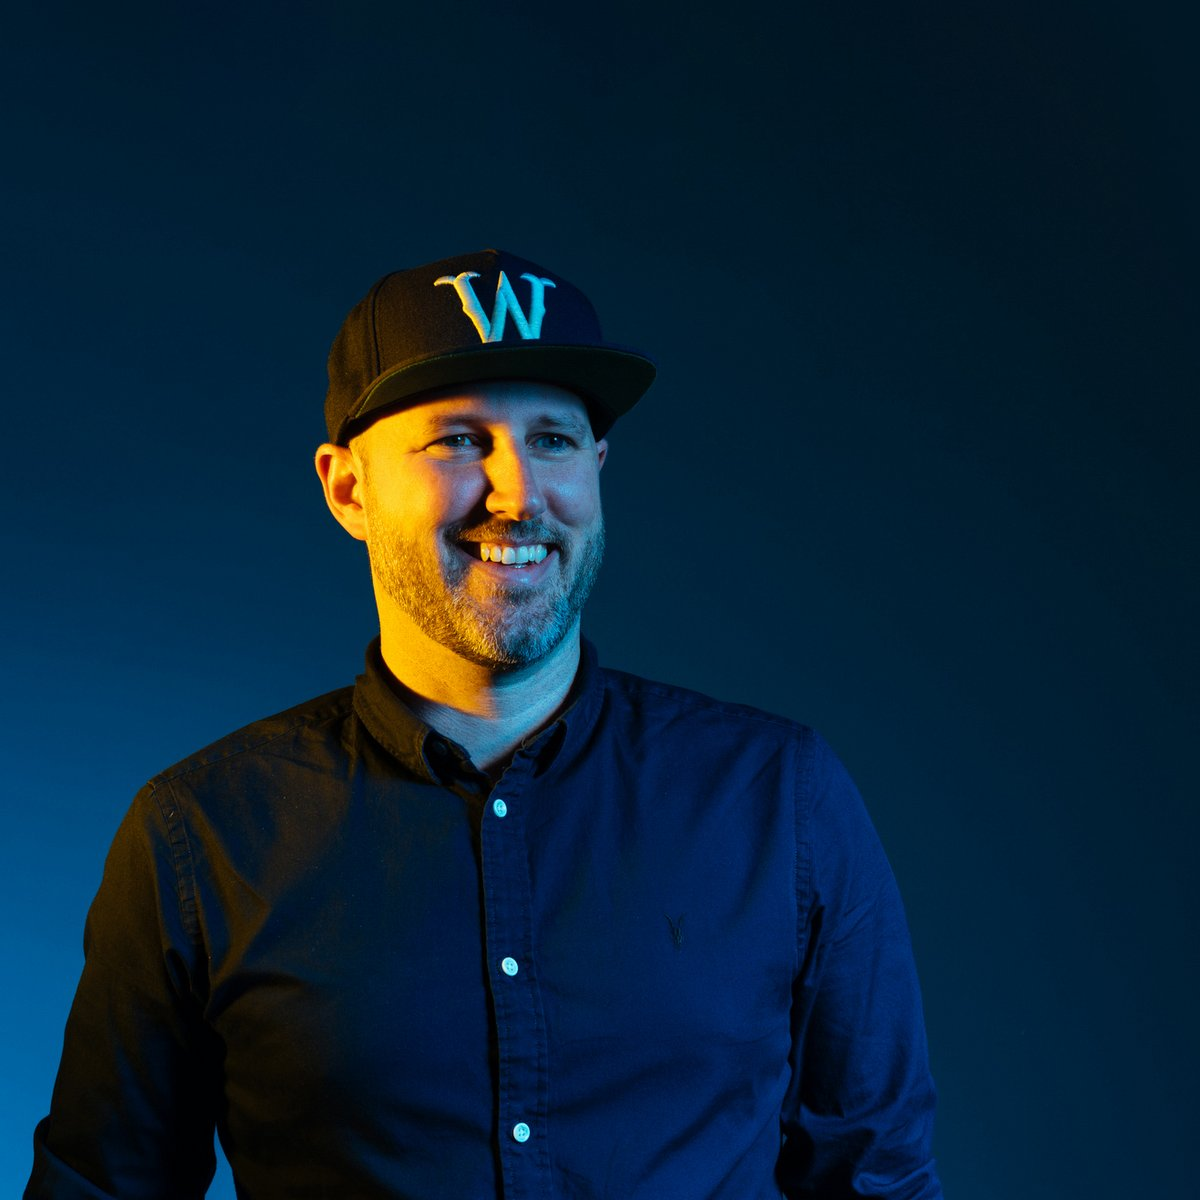 008 Justin Gignac: Building the world's most obsessively curated community of creatives